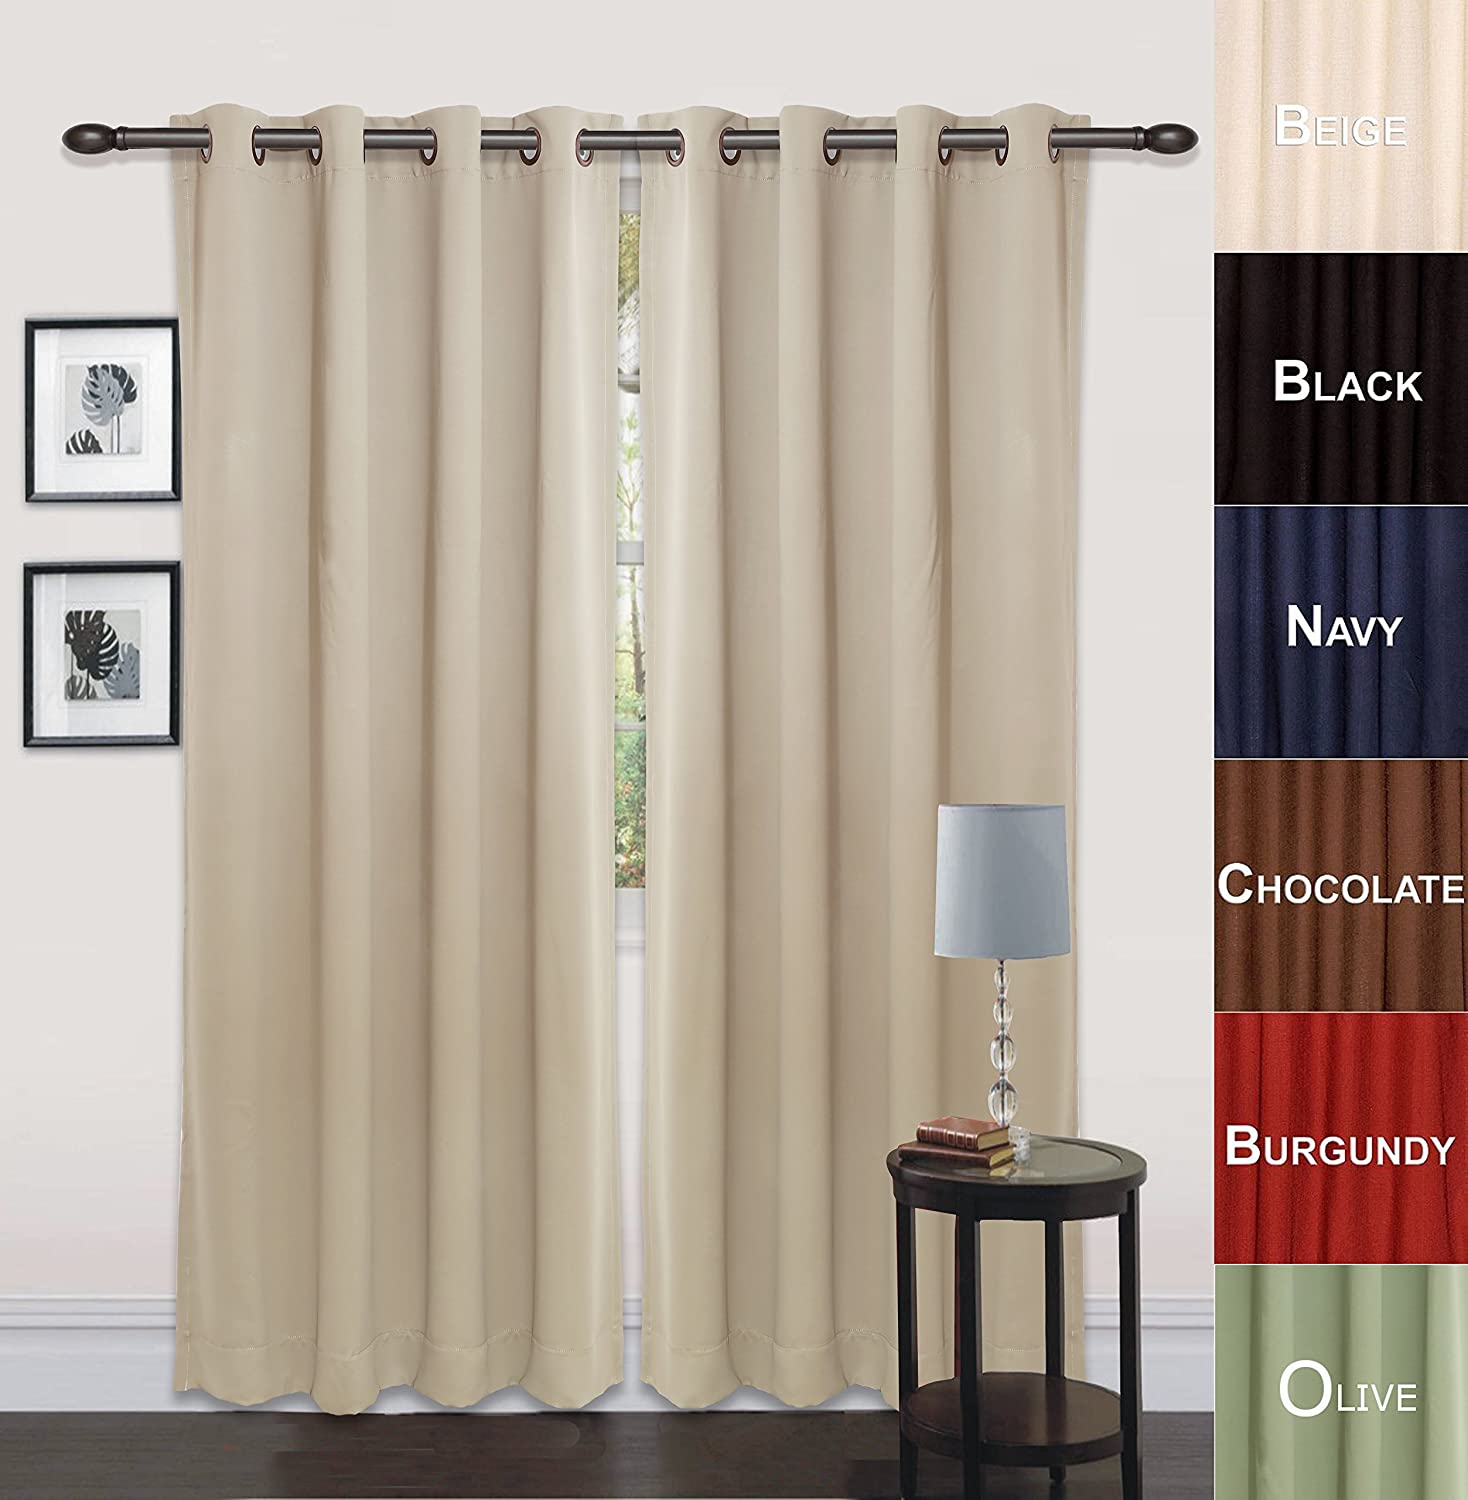 96 inch curtain rod